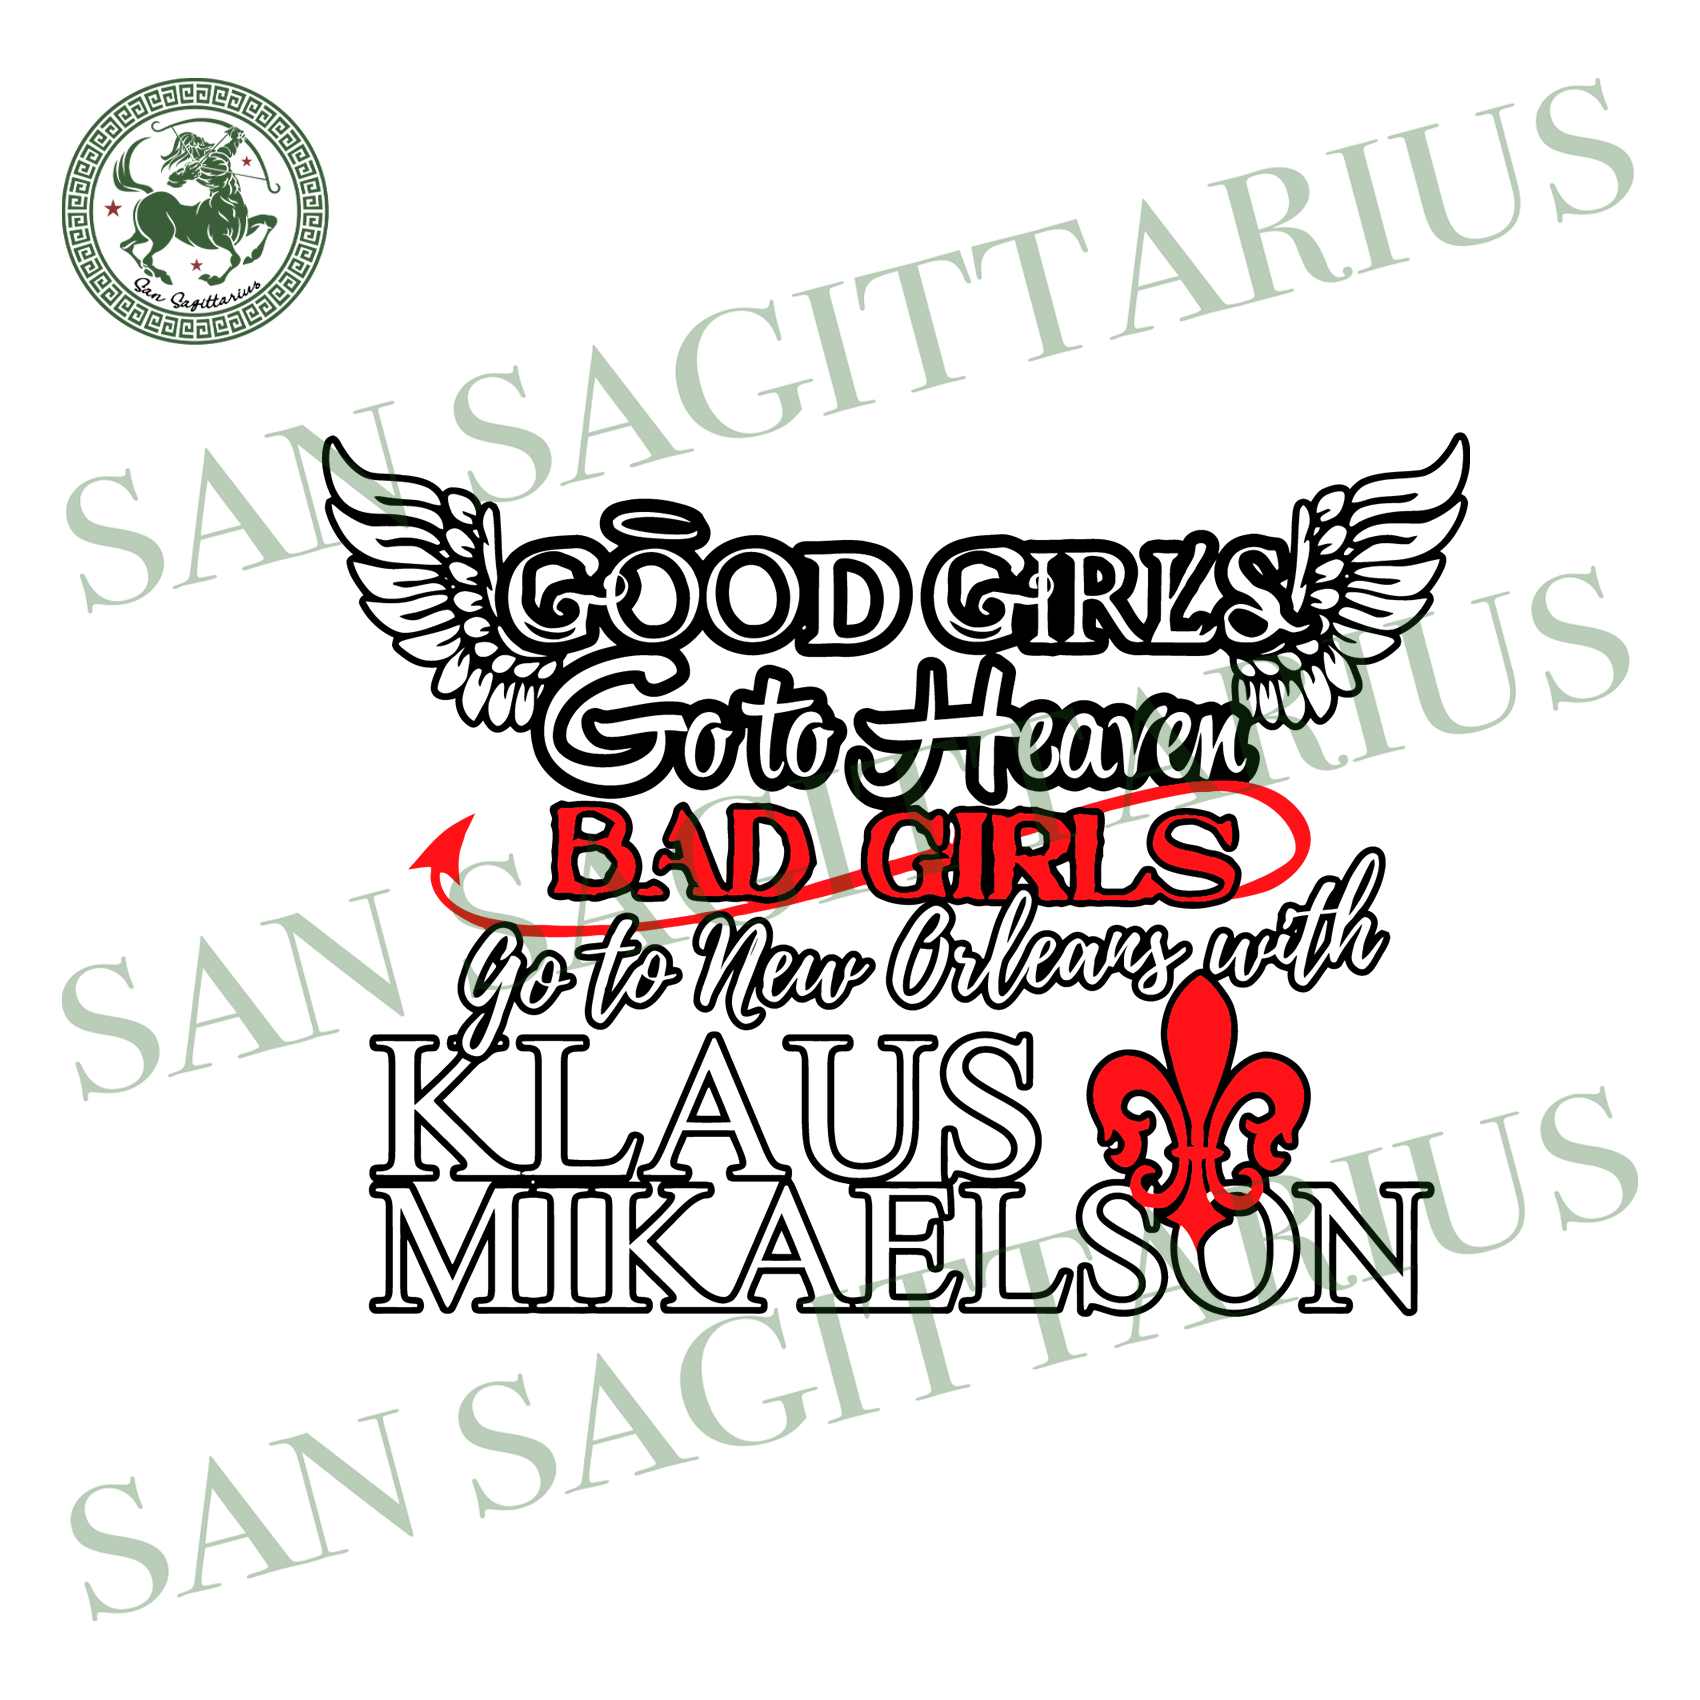 Good girl go to heaven Bad girls svg,go to new orleans with mikaelson svg,Klaus mikaelson svg,supernatural svg,supernatural shirt, supernatural pin, supernatural gift